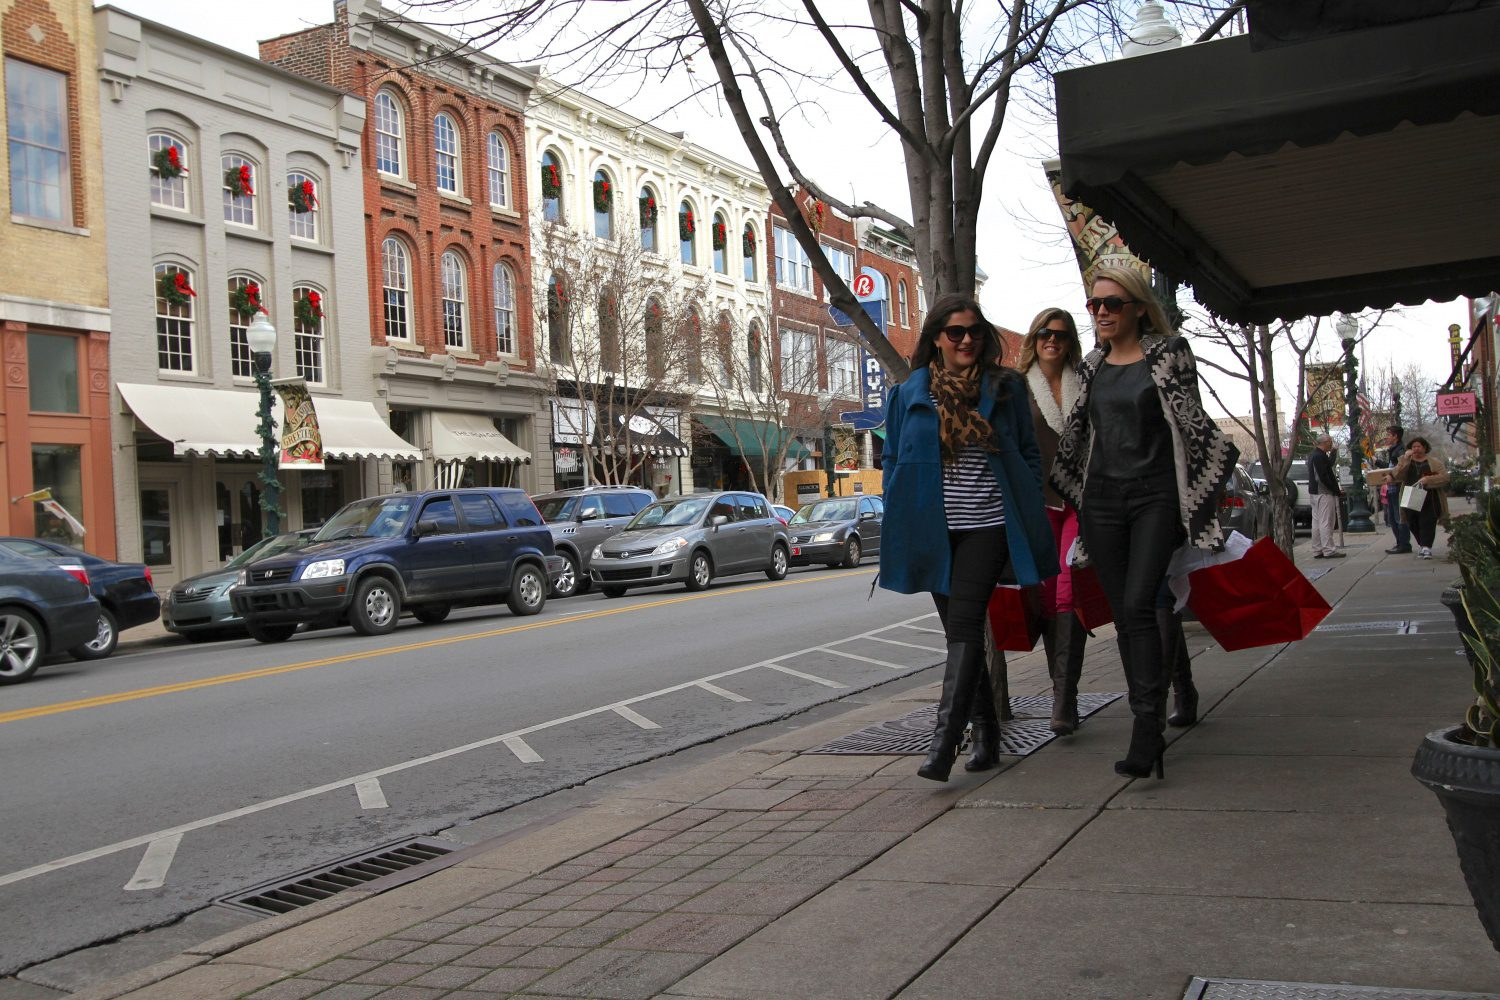 small-biz-saturday_main-street-shoppers2_photo-by-debbie-smartt-1